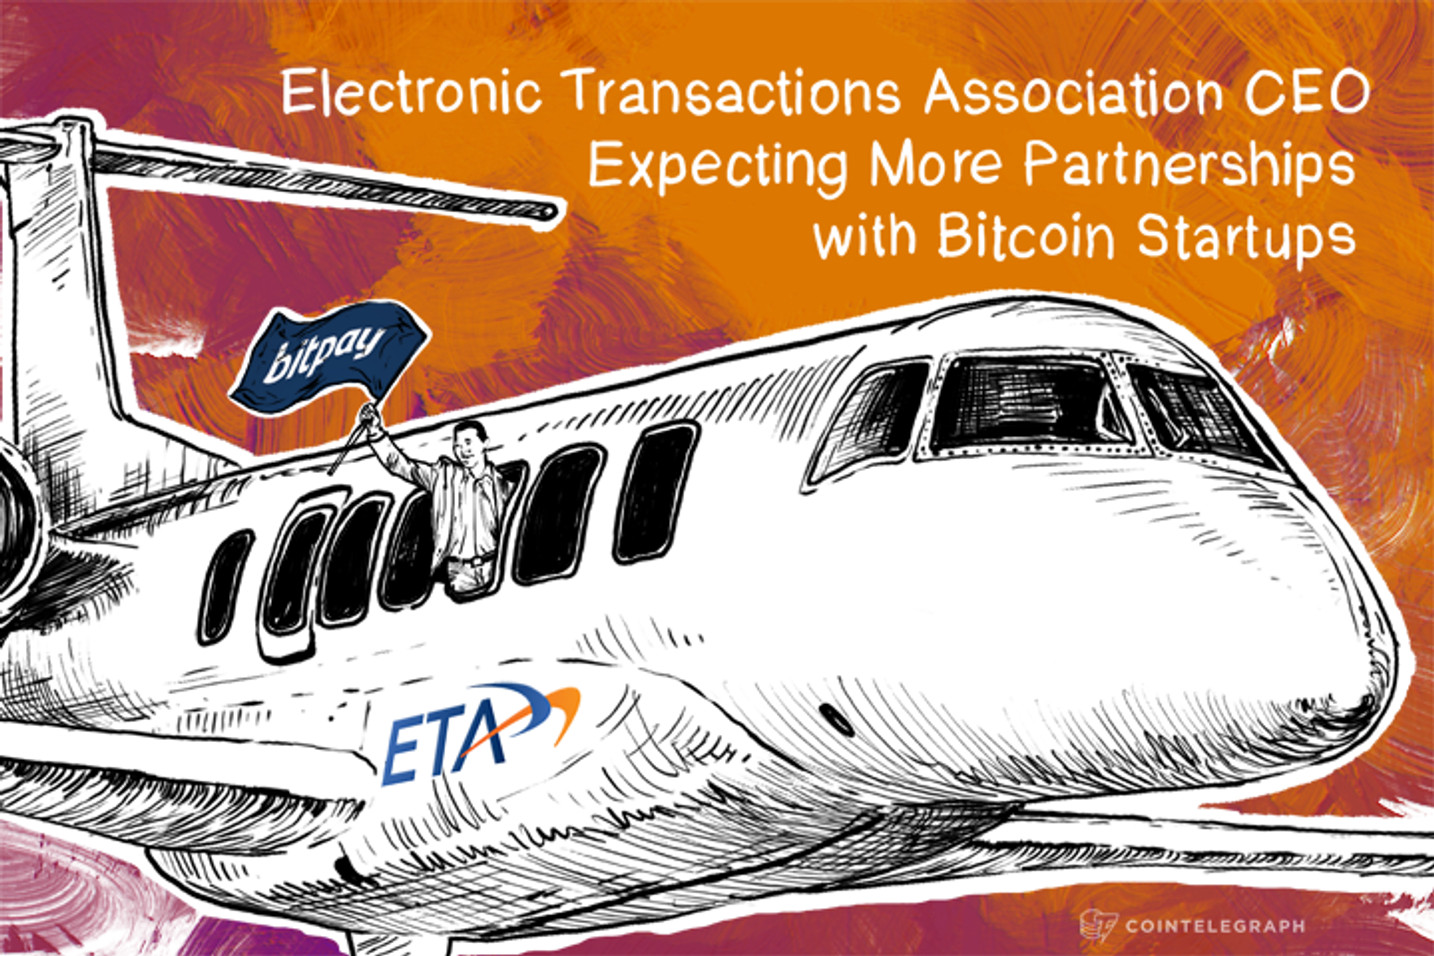 Electronic Transactions Association CEO Expecting More Partnerships with Bitcoin Startups